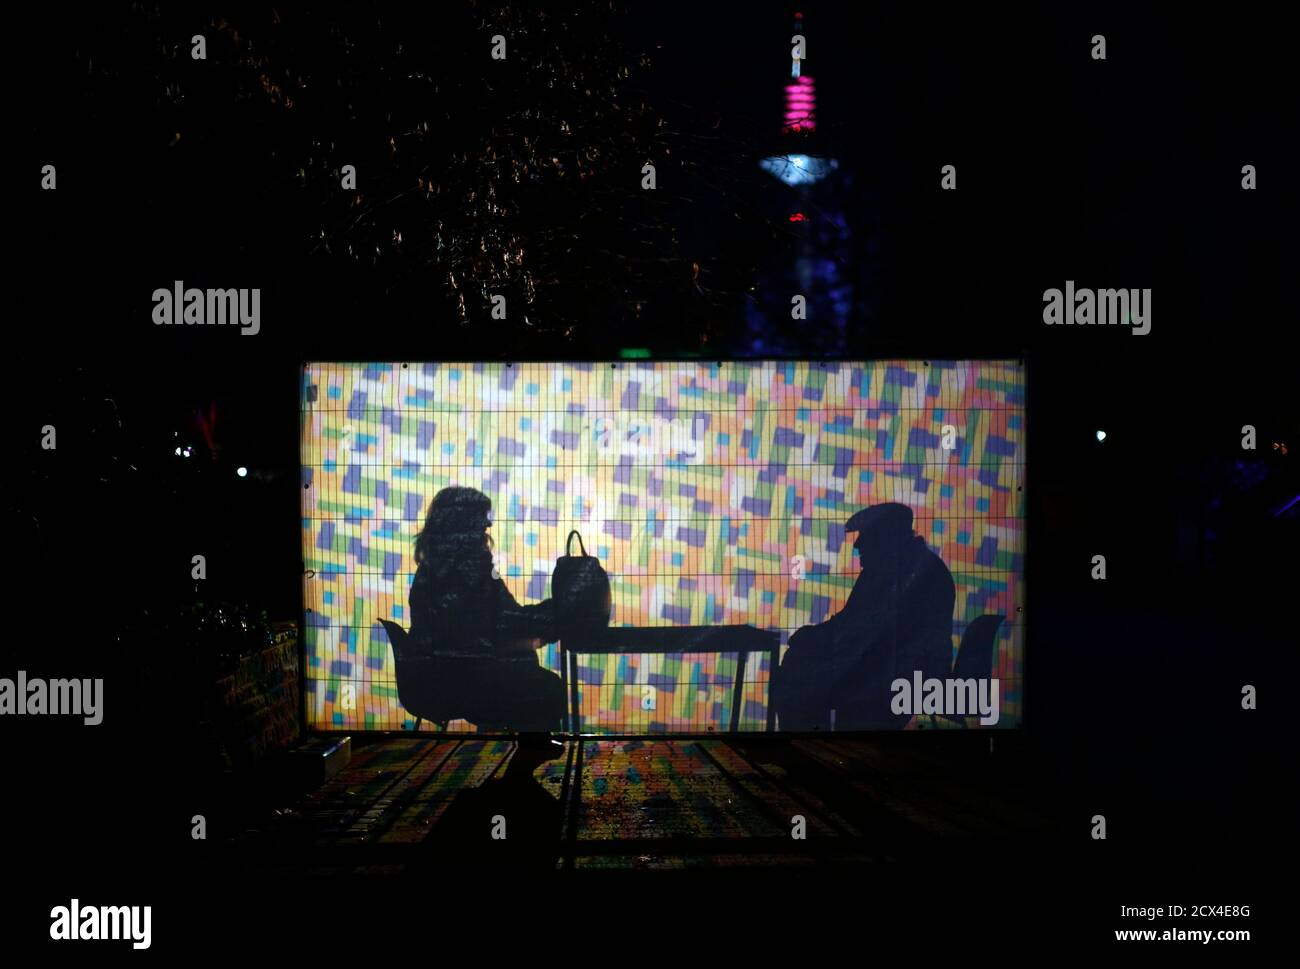 A man and a woman are seen behind a light installation by artist Wolfgang Flammersfeld at Palmengarten during the exhibition Winterlicht (winter light) in Frankfurt January 14, 2013. REUTERS/Lisi Niesner  (GERMANY - Tags: SOCIETY) Stock Photo